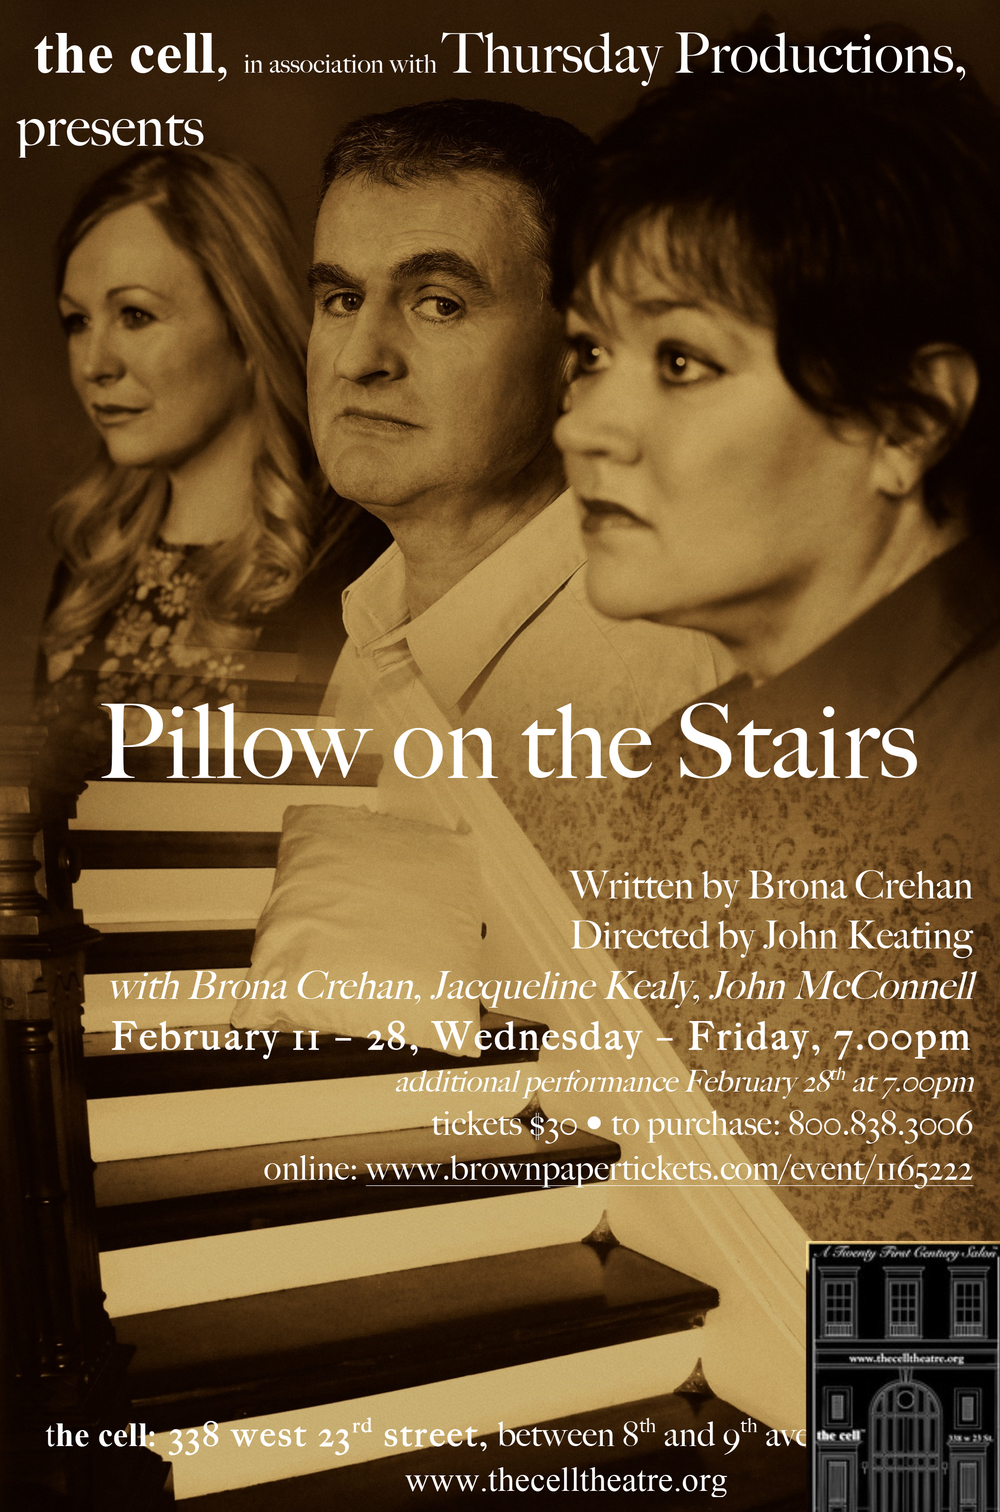 pregnancy sets off a chain of events in the lives of three people in PILLOW ON THE STAIRS.  What follows creates a web of secrets and denials that binds this trio of ordinary, flawed individuals together for a lifetime. Every decision has lasting consequences in this intimate story about love, loyalty, betrayal, and trust. PILLOW ON THE STAIRS stars John McConnell (The Weir on Broadway), Jacqueline Kealy (Eclipsed at Irish Rep) and Brona Crehan. The production team includes:  John Keating (Production Director), Gertjan Houben  (lighting), Florian Staab (sound design) and Mackenzie Meeks (stage manager). PILLOW ON THE STAIRS runs February 11 - 28, Wednesday - Friday at 7pm with an additional performance on Feb 28 at 7pm.